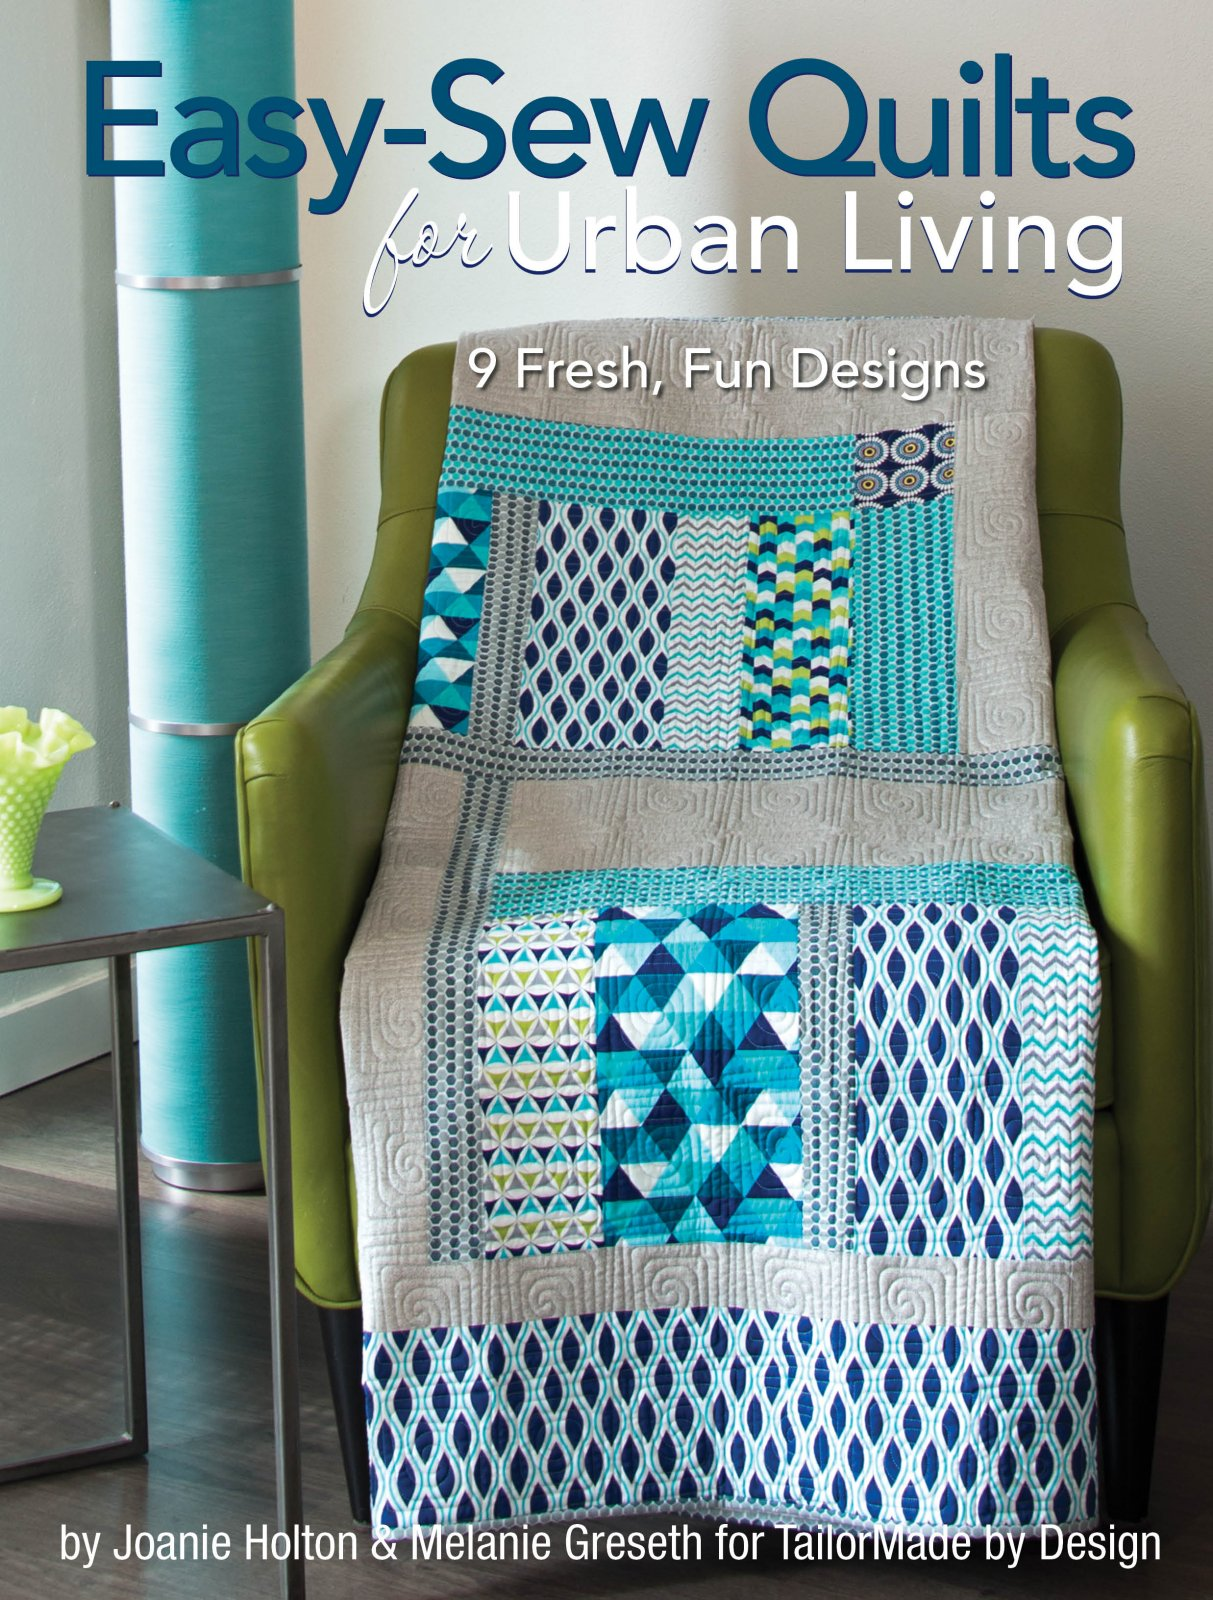 Easy-Sew Quilts Book